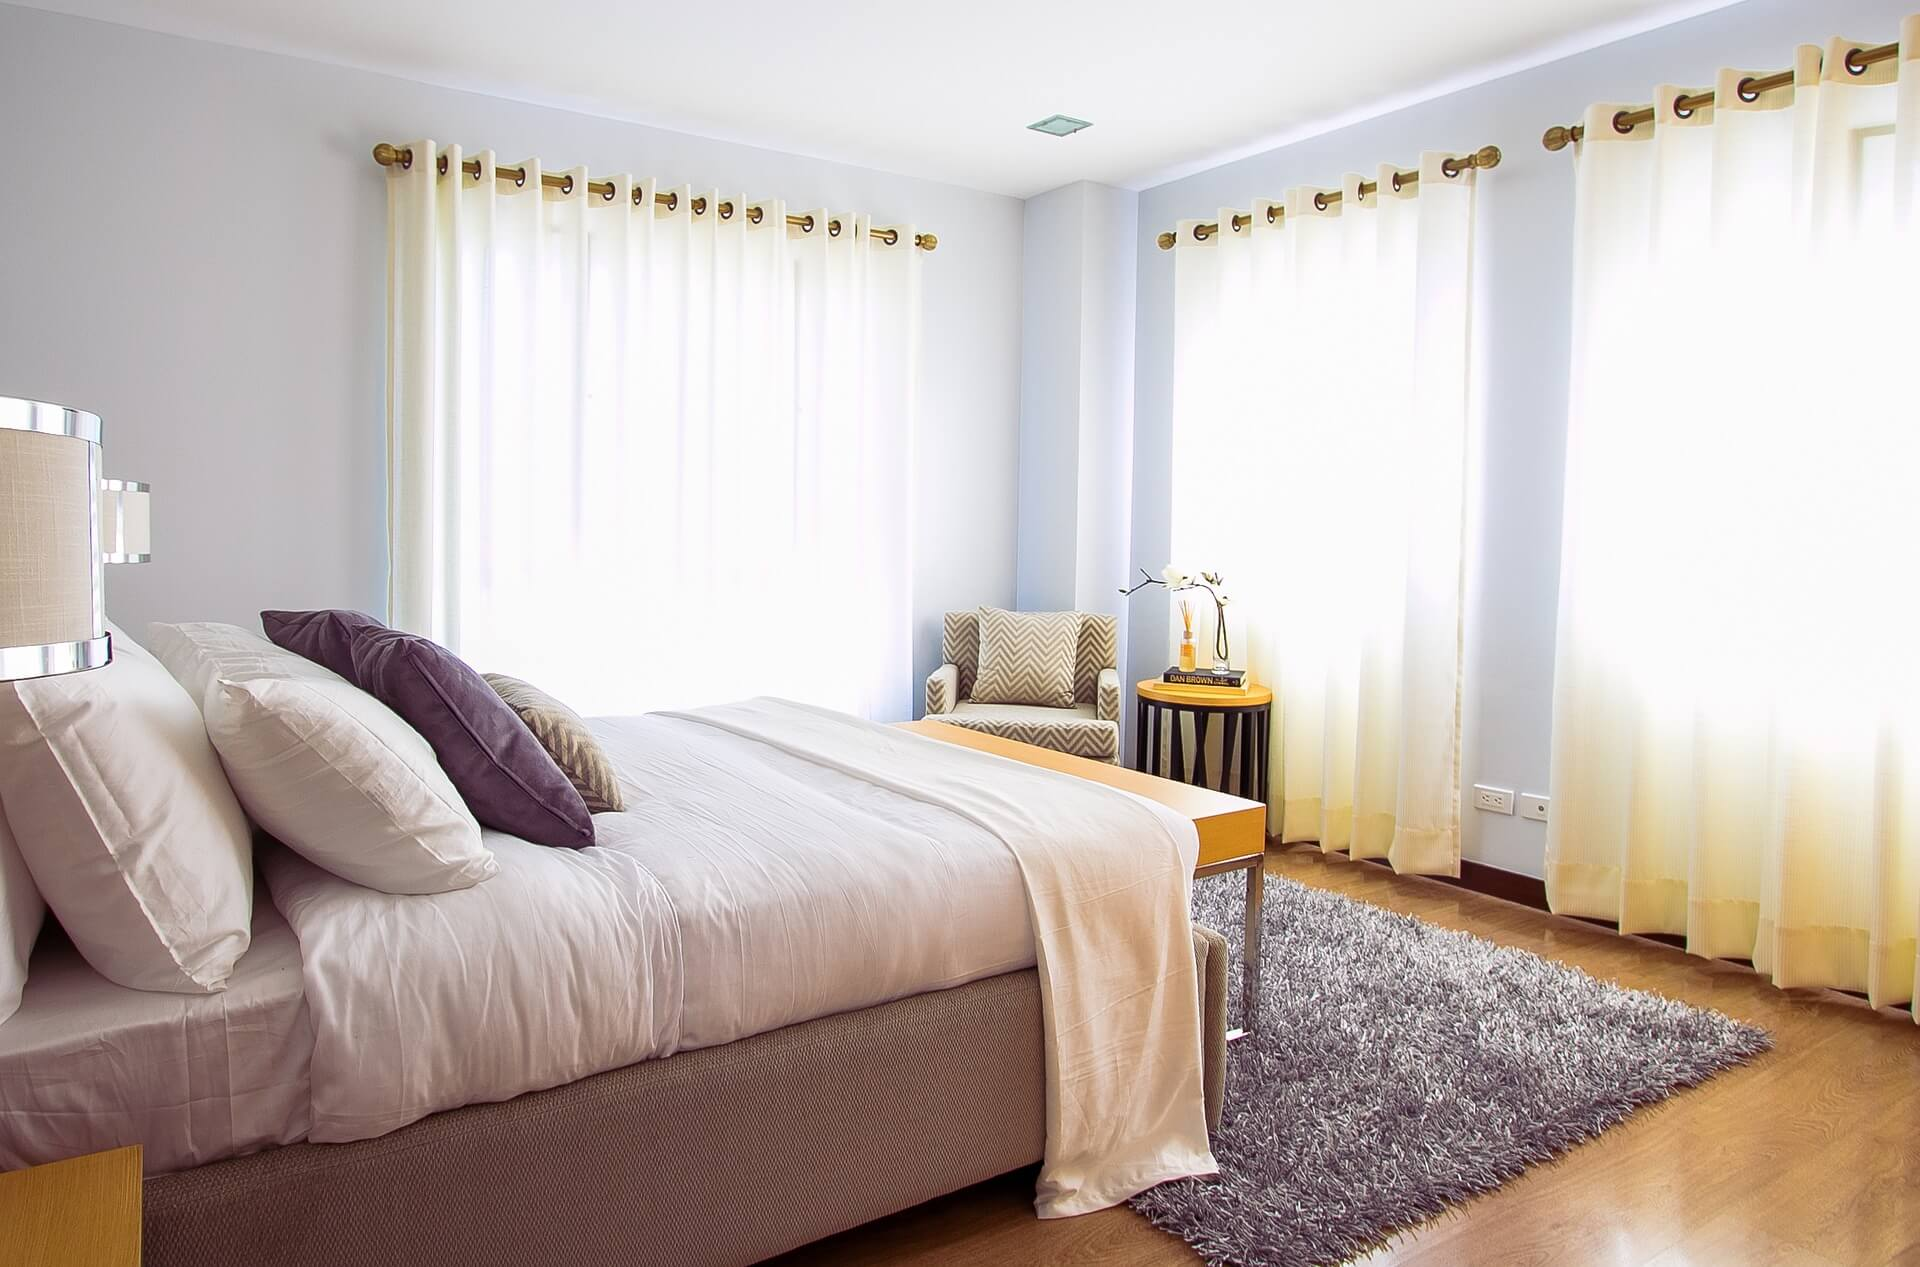 Curtains and shutters can shade heat coming in from windows